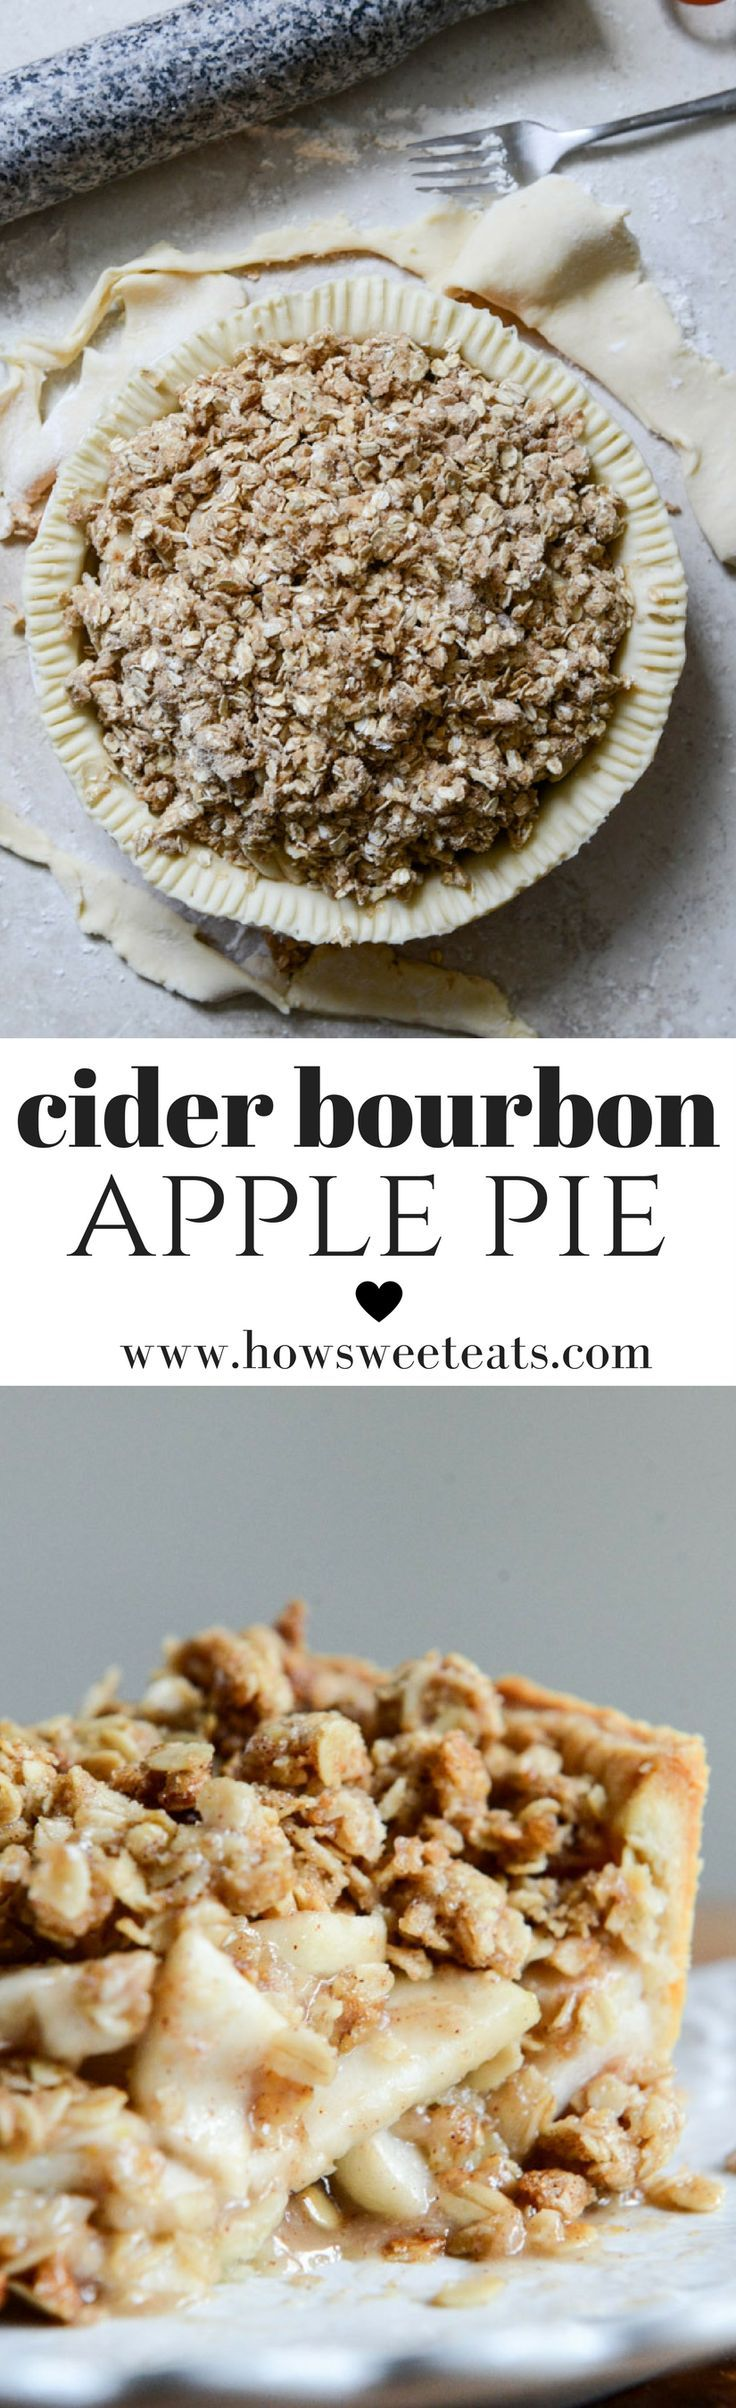 Cider Bourbon Apple Pie with Oatmeal Cookie Crumble I http://howsweeteats.com /howsweeteats/